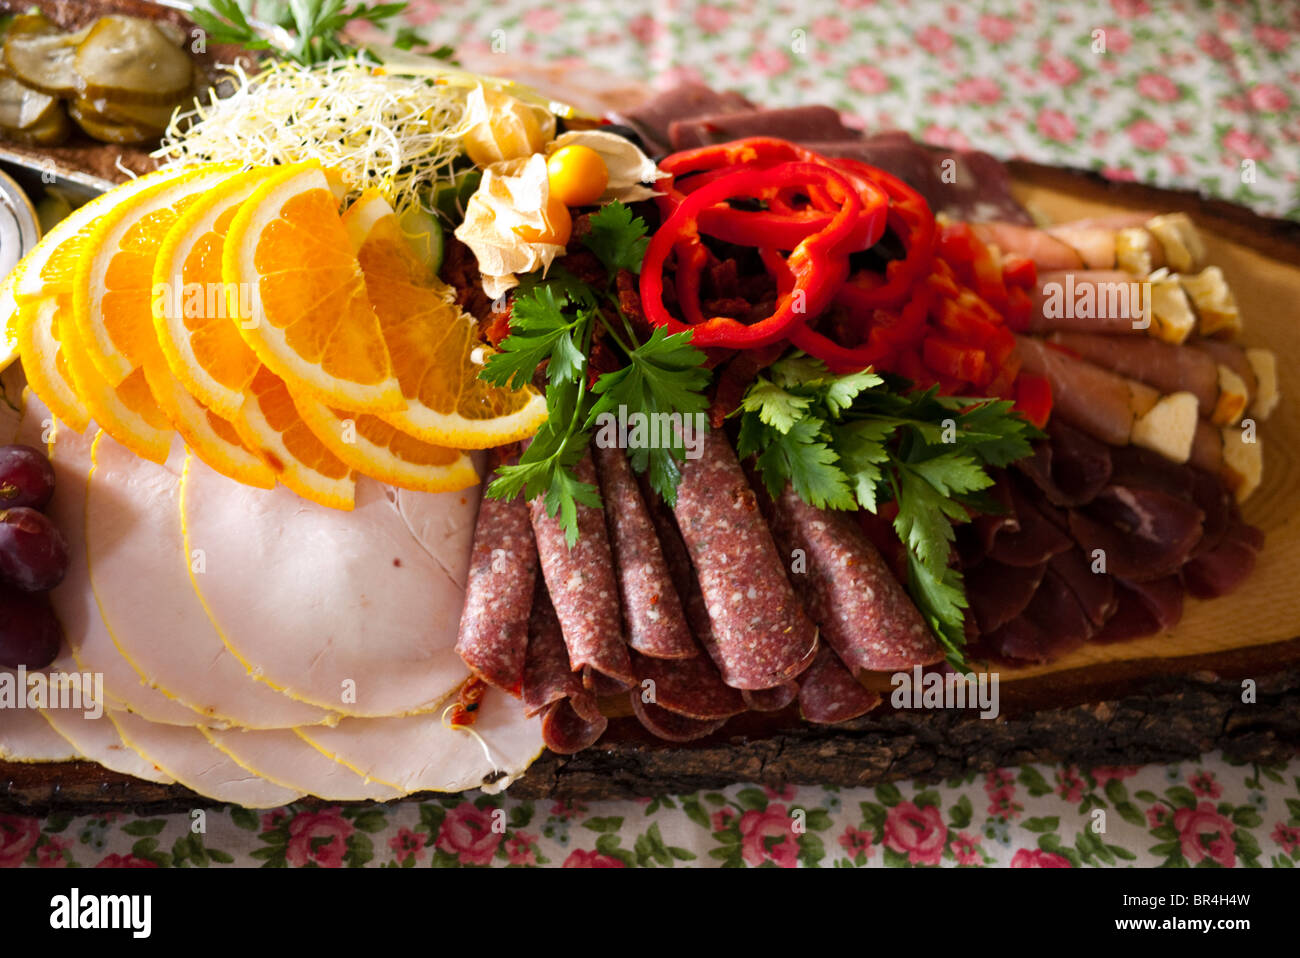 Board with different charcuterie - Stock Image